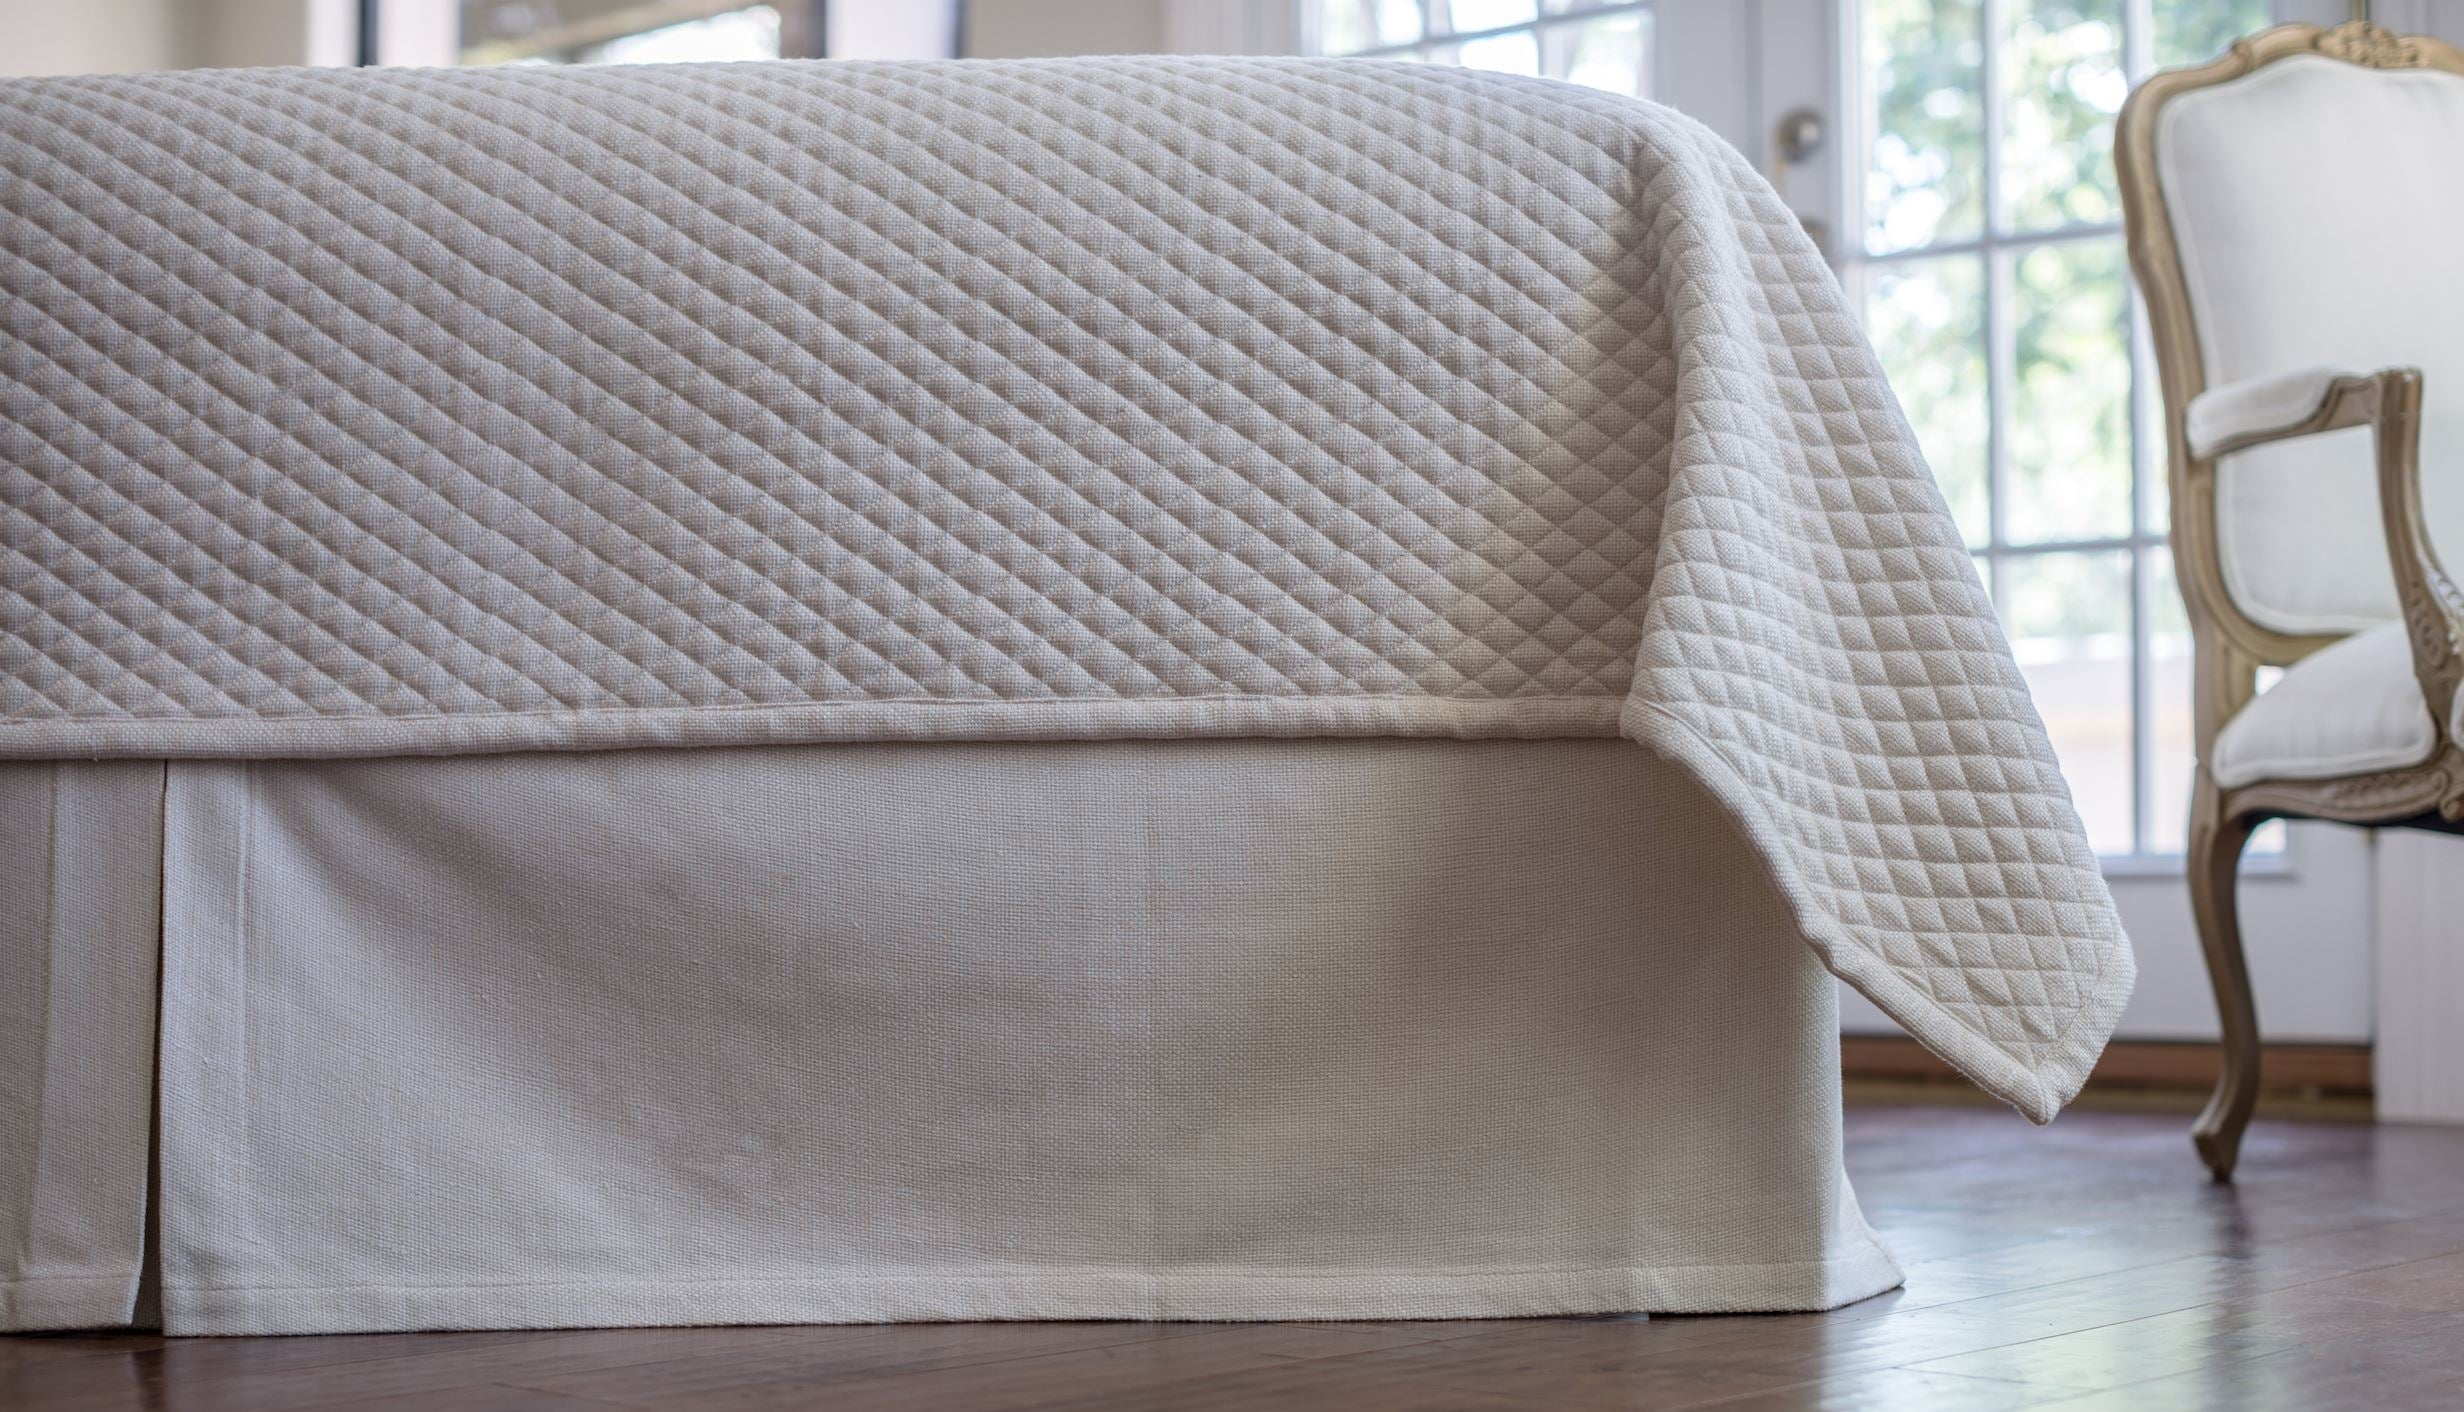 Lili Alessandra Laurie Quilted Ivory Basketweave Tailored Bed Skirt